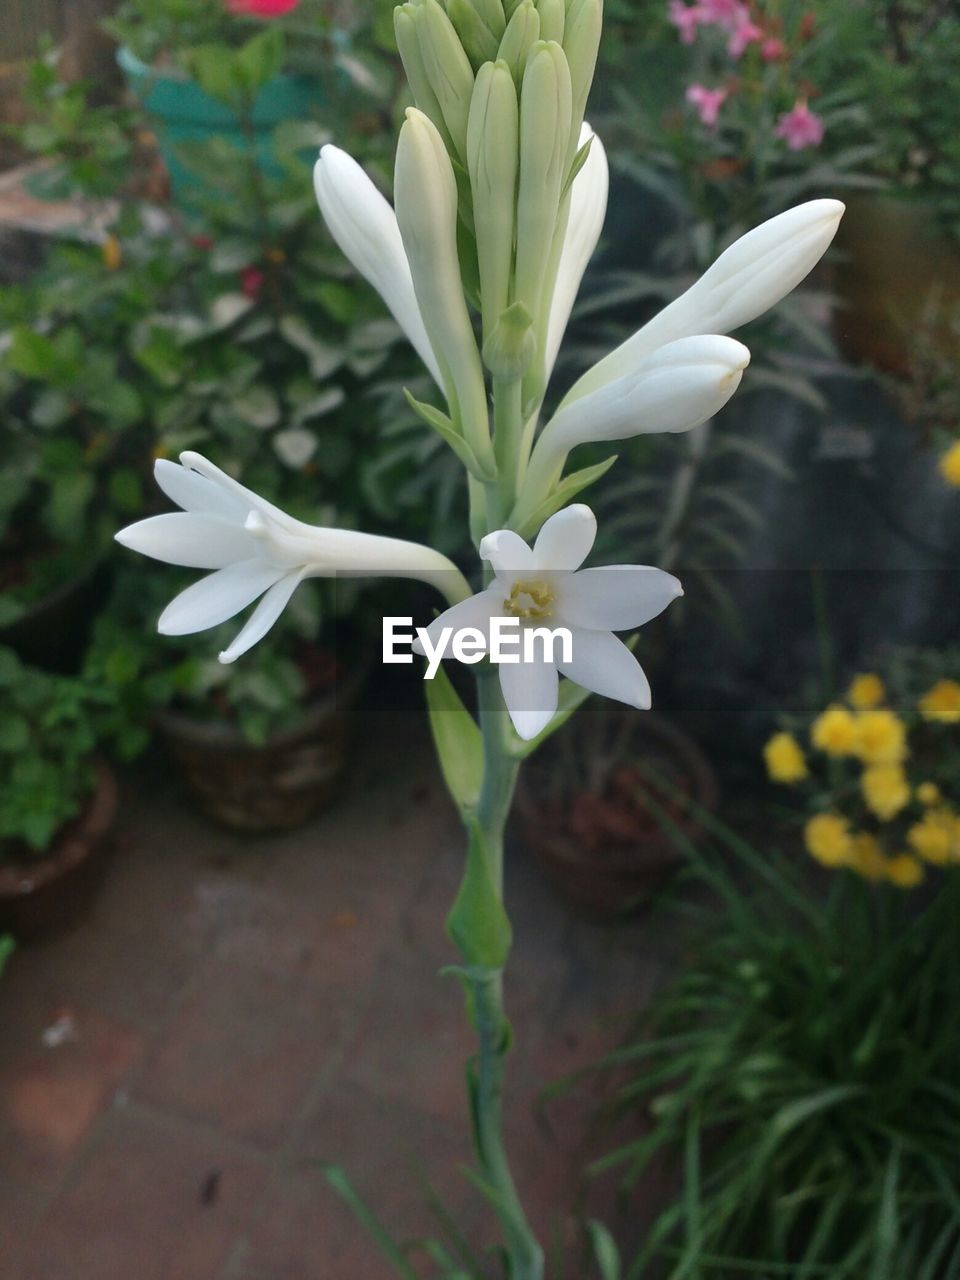 flower, petal, growth, nature, fragility, white color, plant, beauty in nature, flower head, freshness, no people, blooming, day, outdoors, close-up